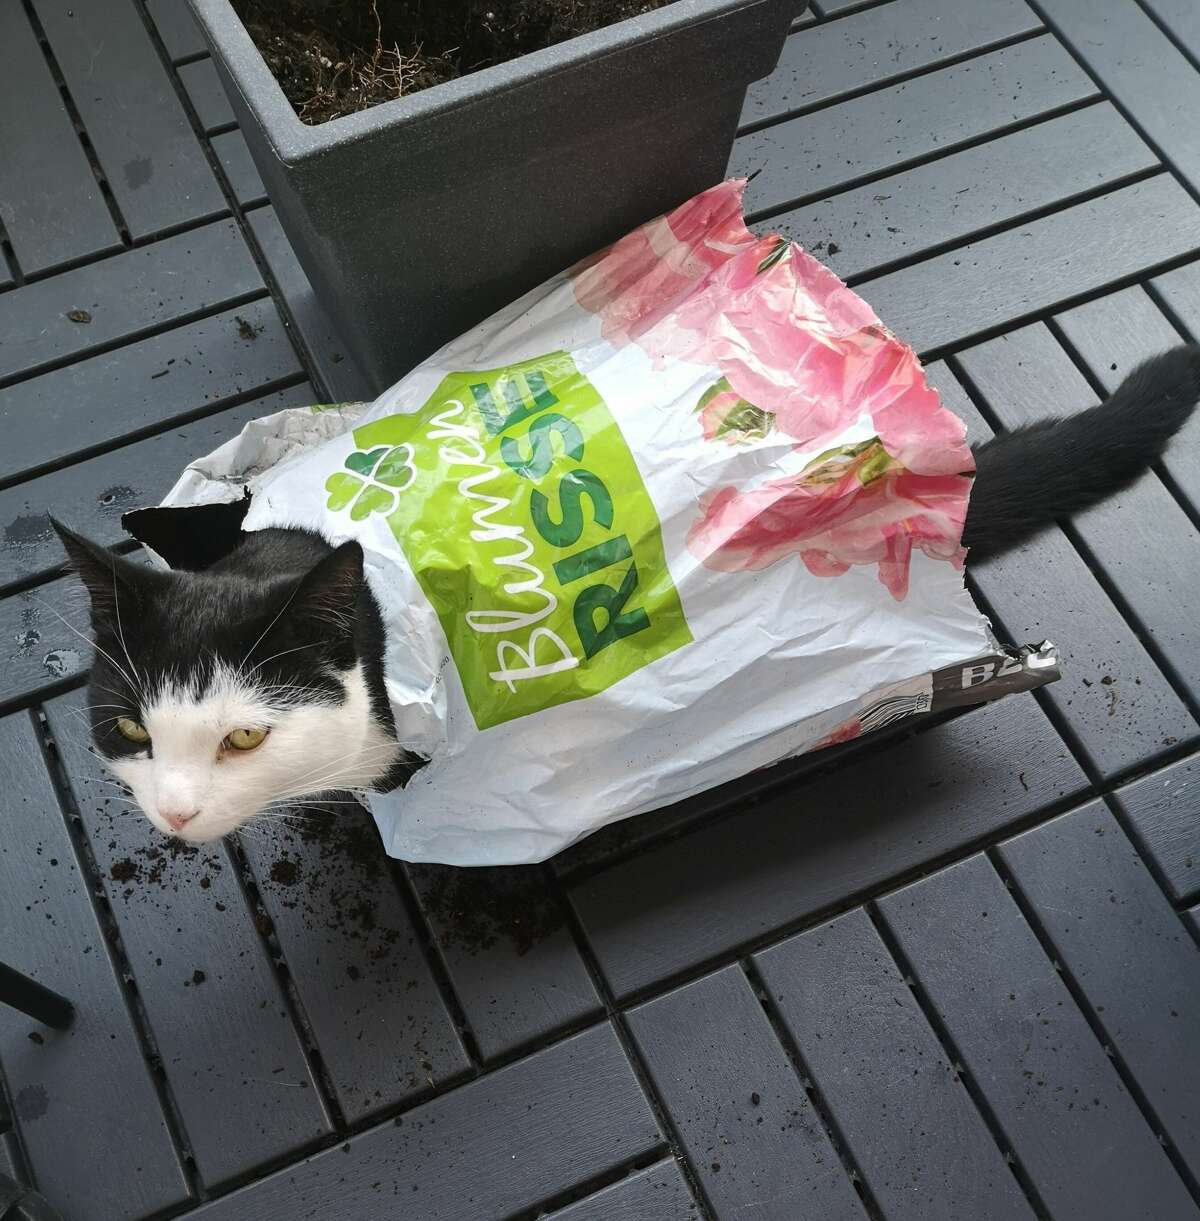 Garden-variety tomcat: Ron recycles a plastic potting soil bag in Kreuztal, Germany.